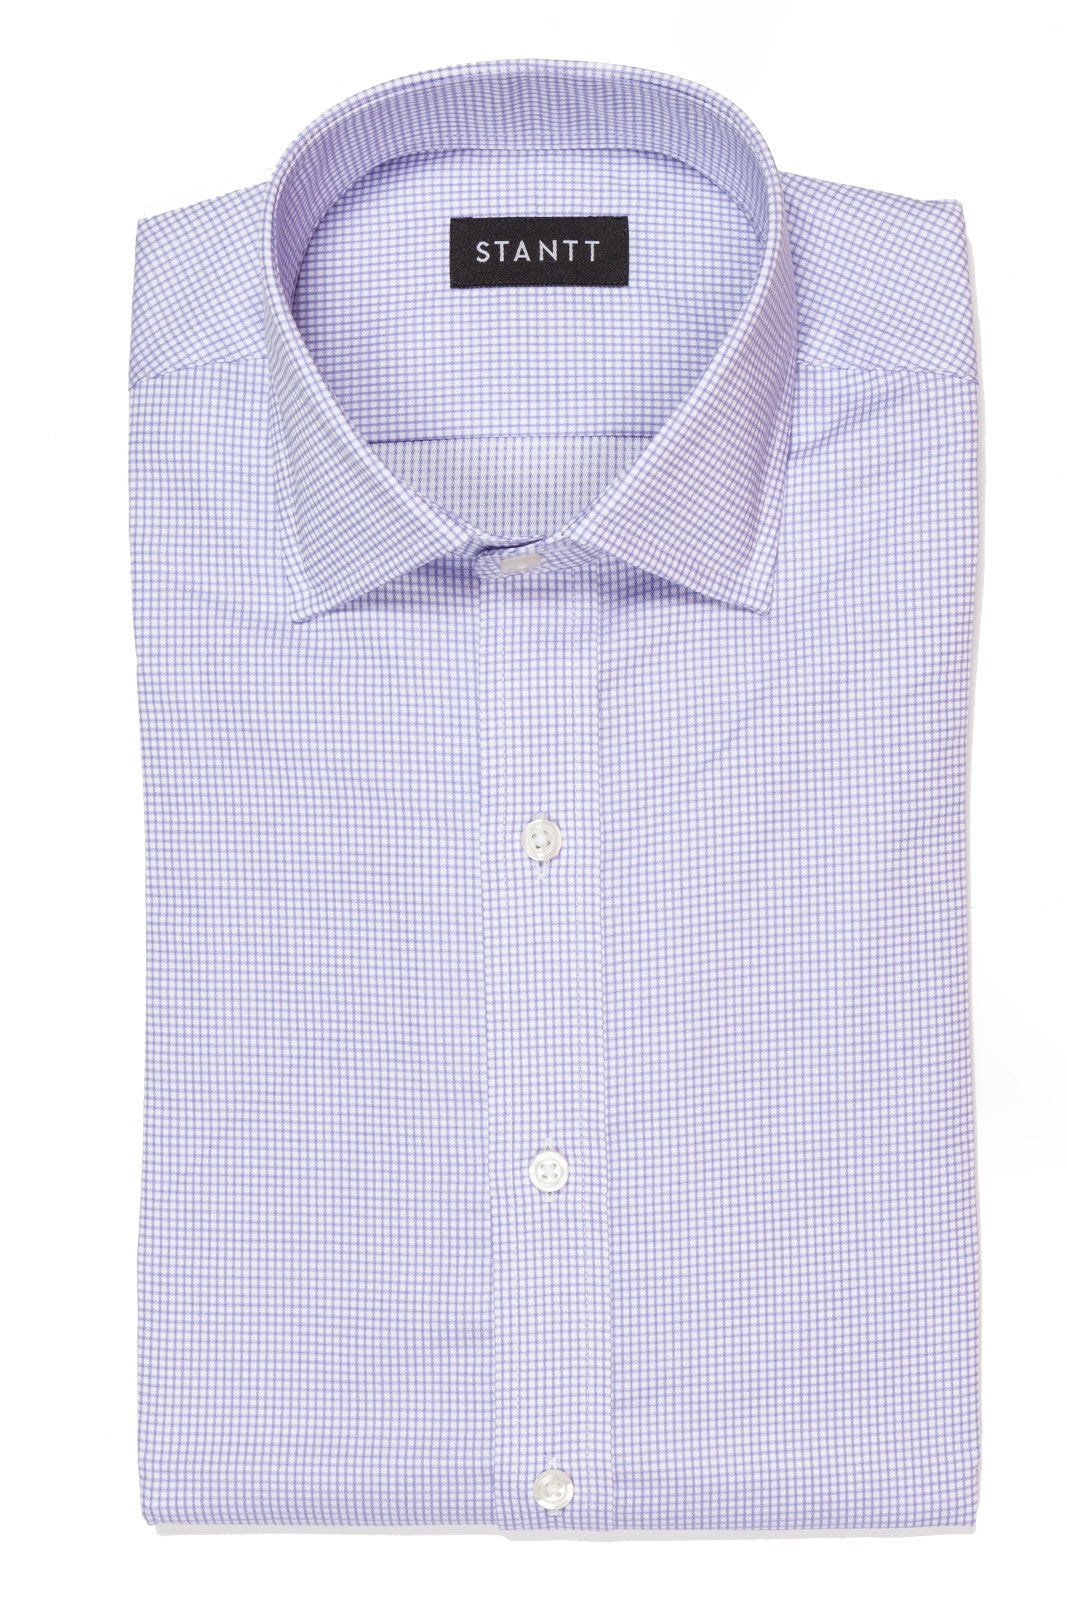 Wrinkle-Resistant Purple Accented Mini-Check: Cutaway Collar, French Cuff